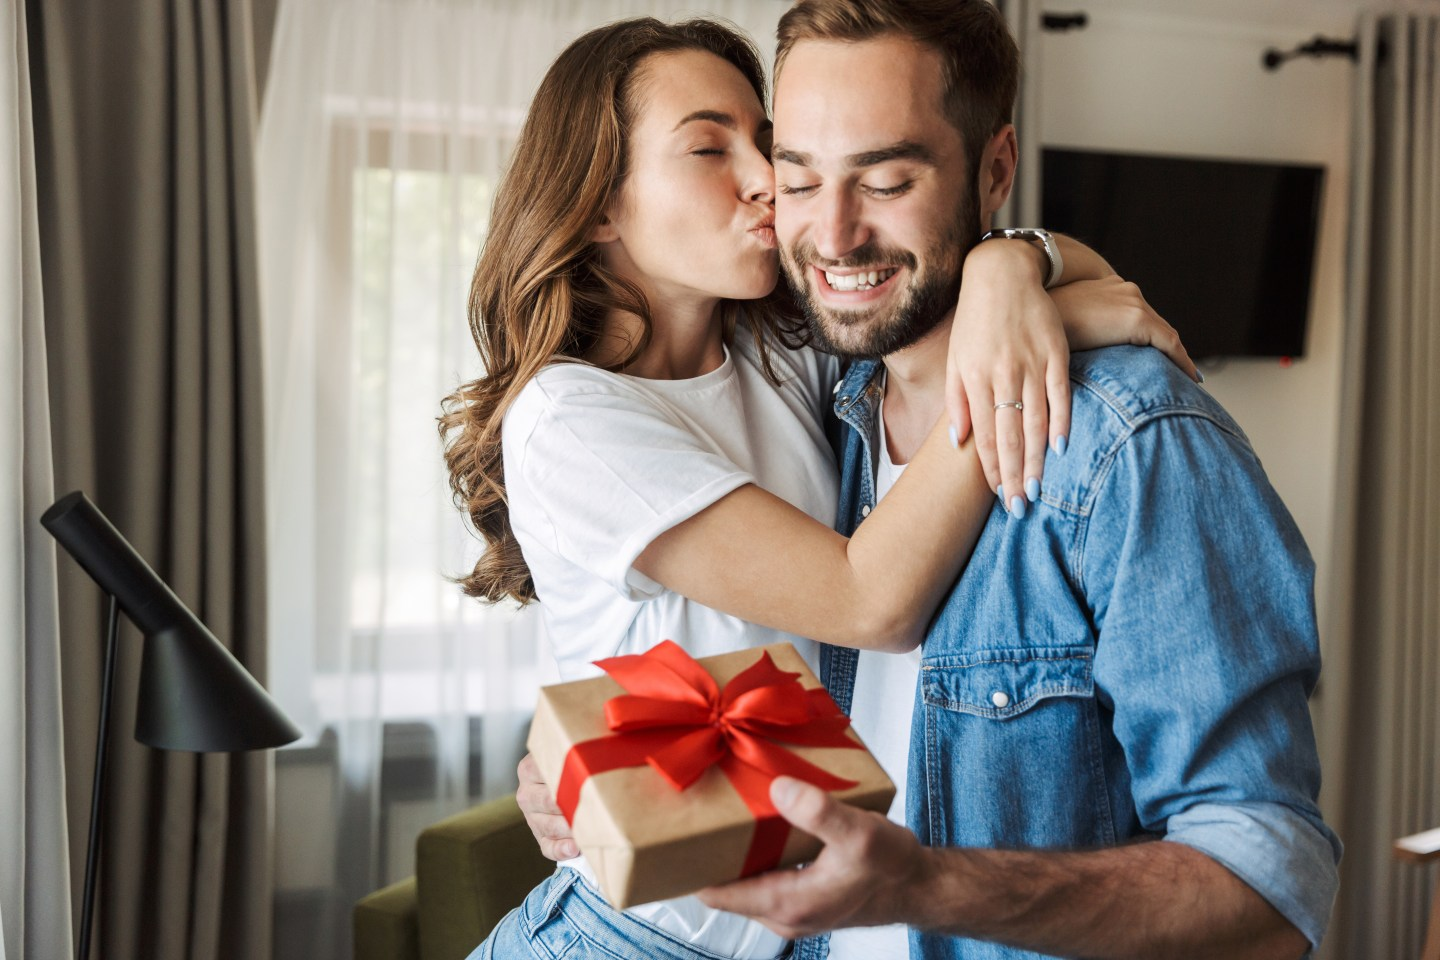 The Best Non-Cheesy Valentine's Day Gifts For Him